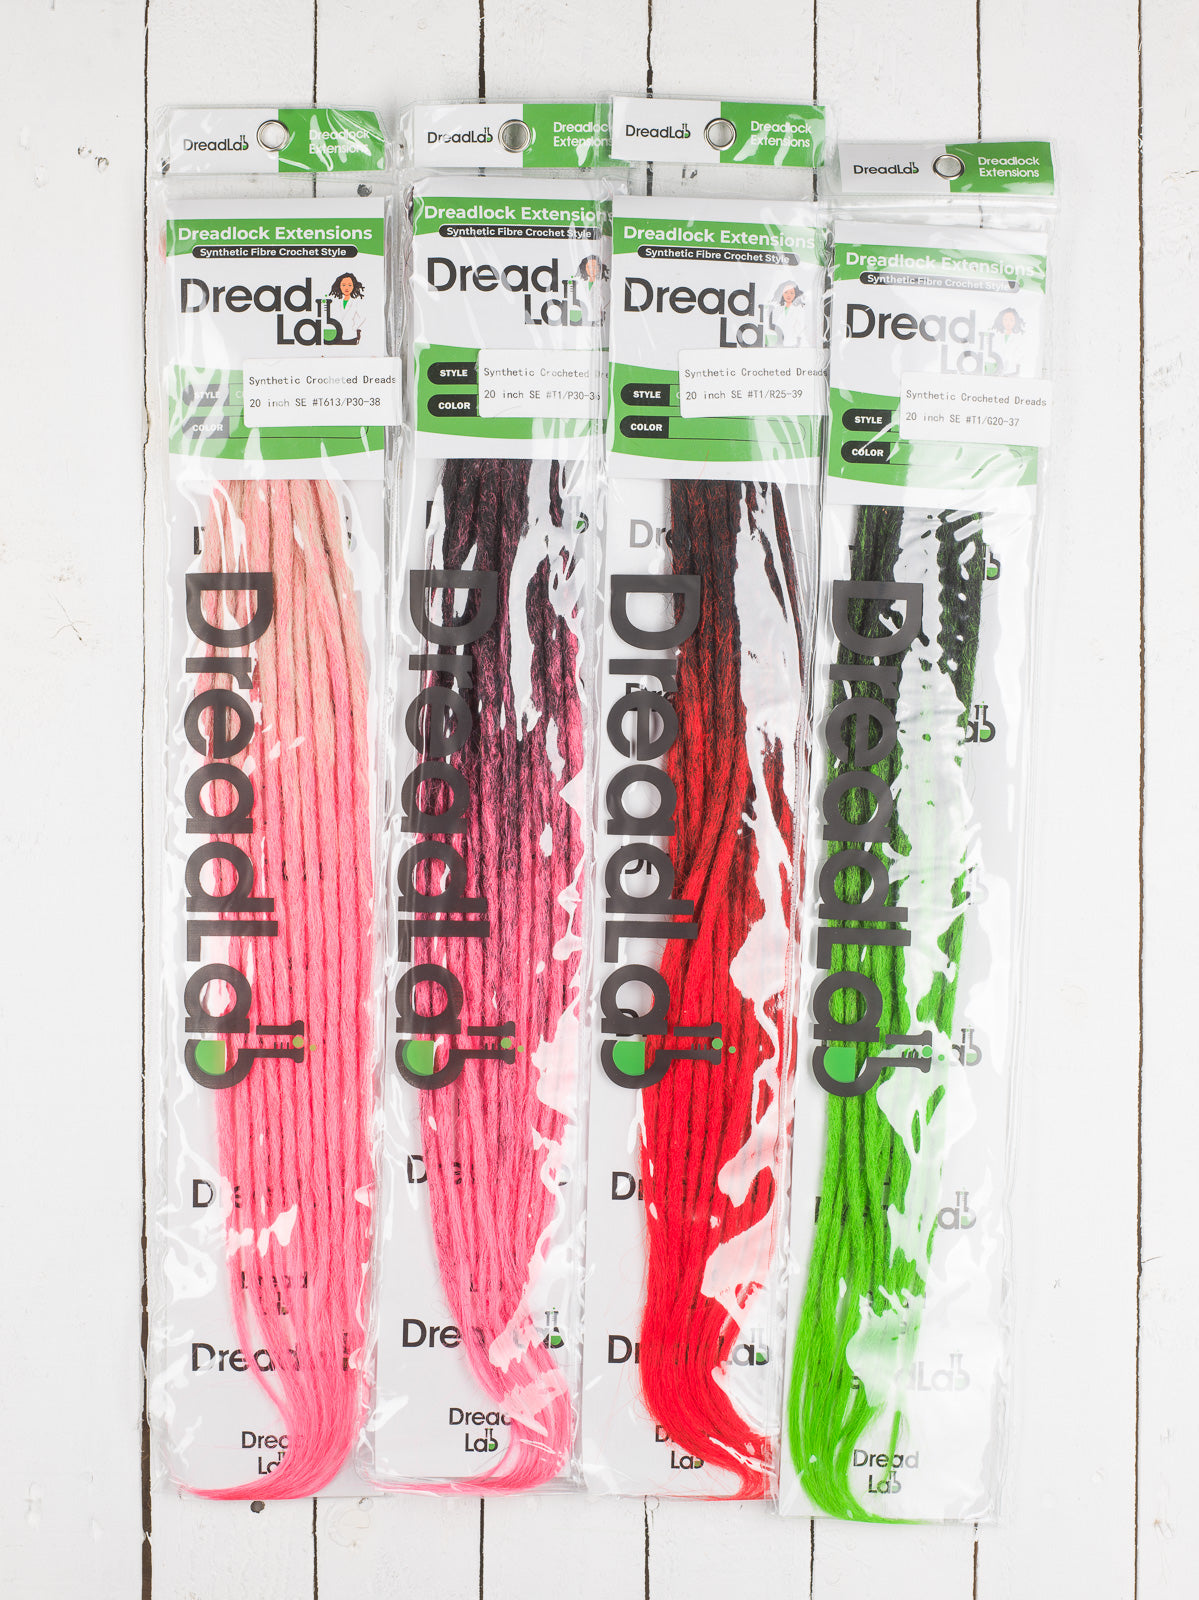 DreadLab - Single Ended Synthetic Dreadlocks (Pack of 10) Ombre Crochet Extensions